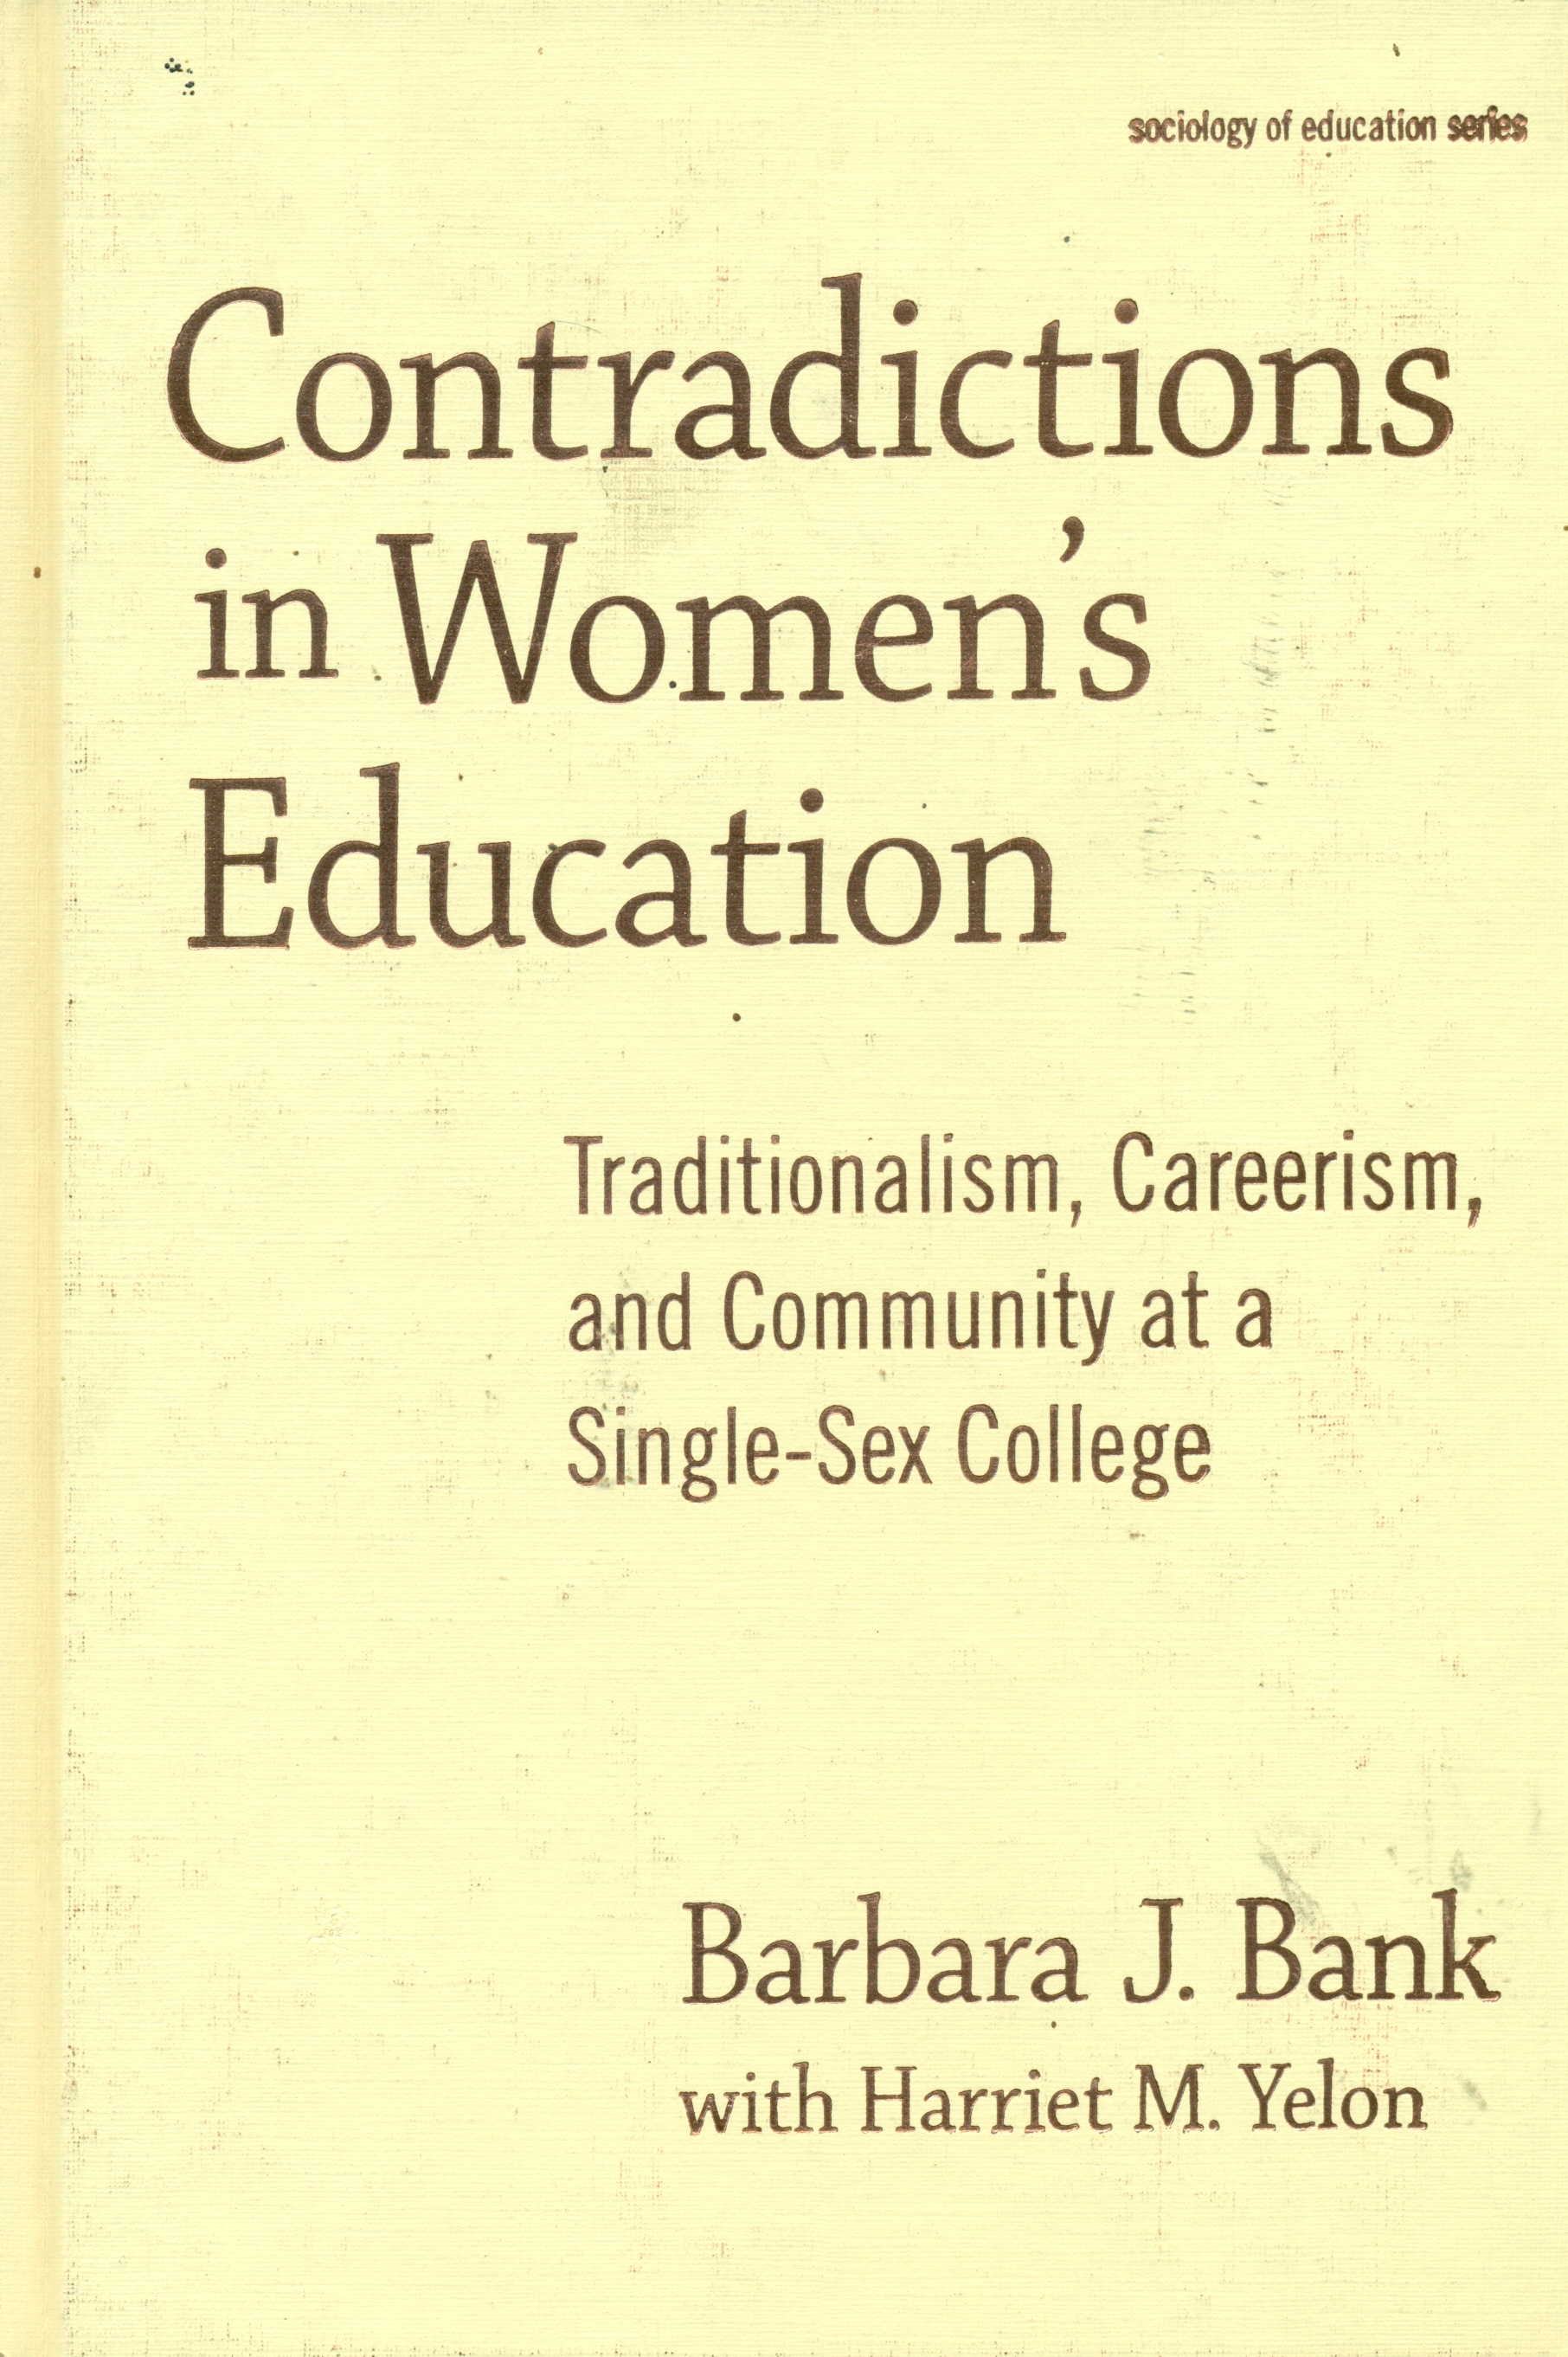 Contradictions in women's education : traditionalism, careerism, and community at a single-sex college